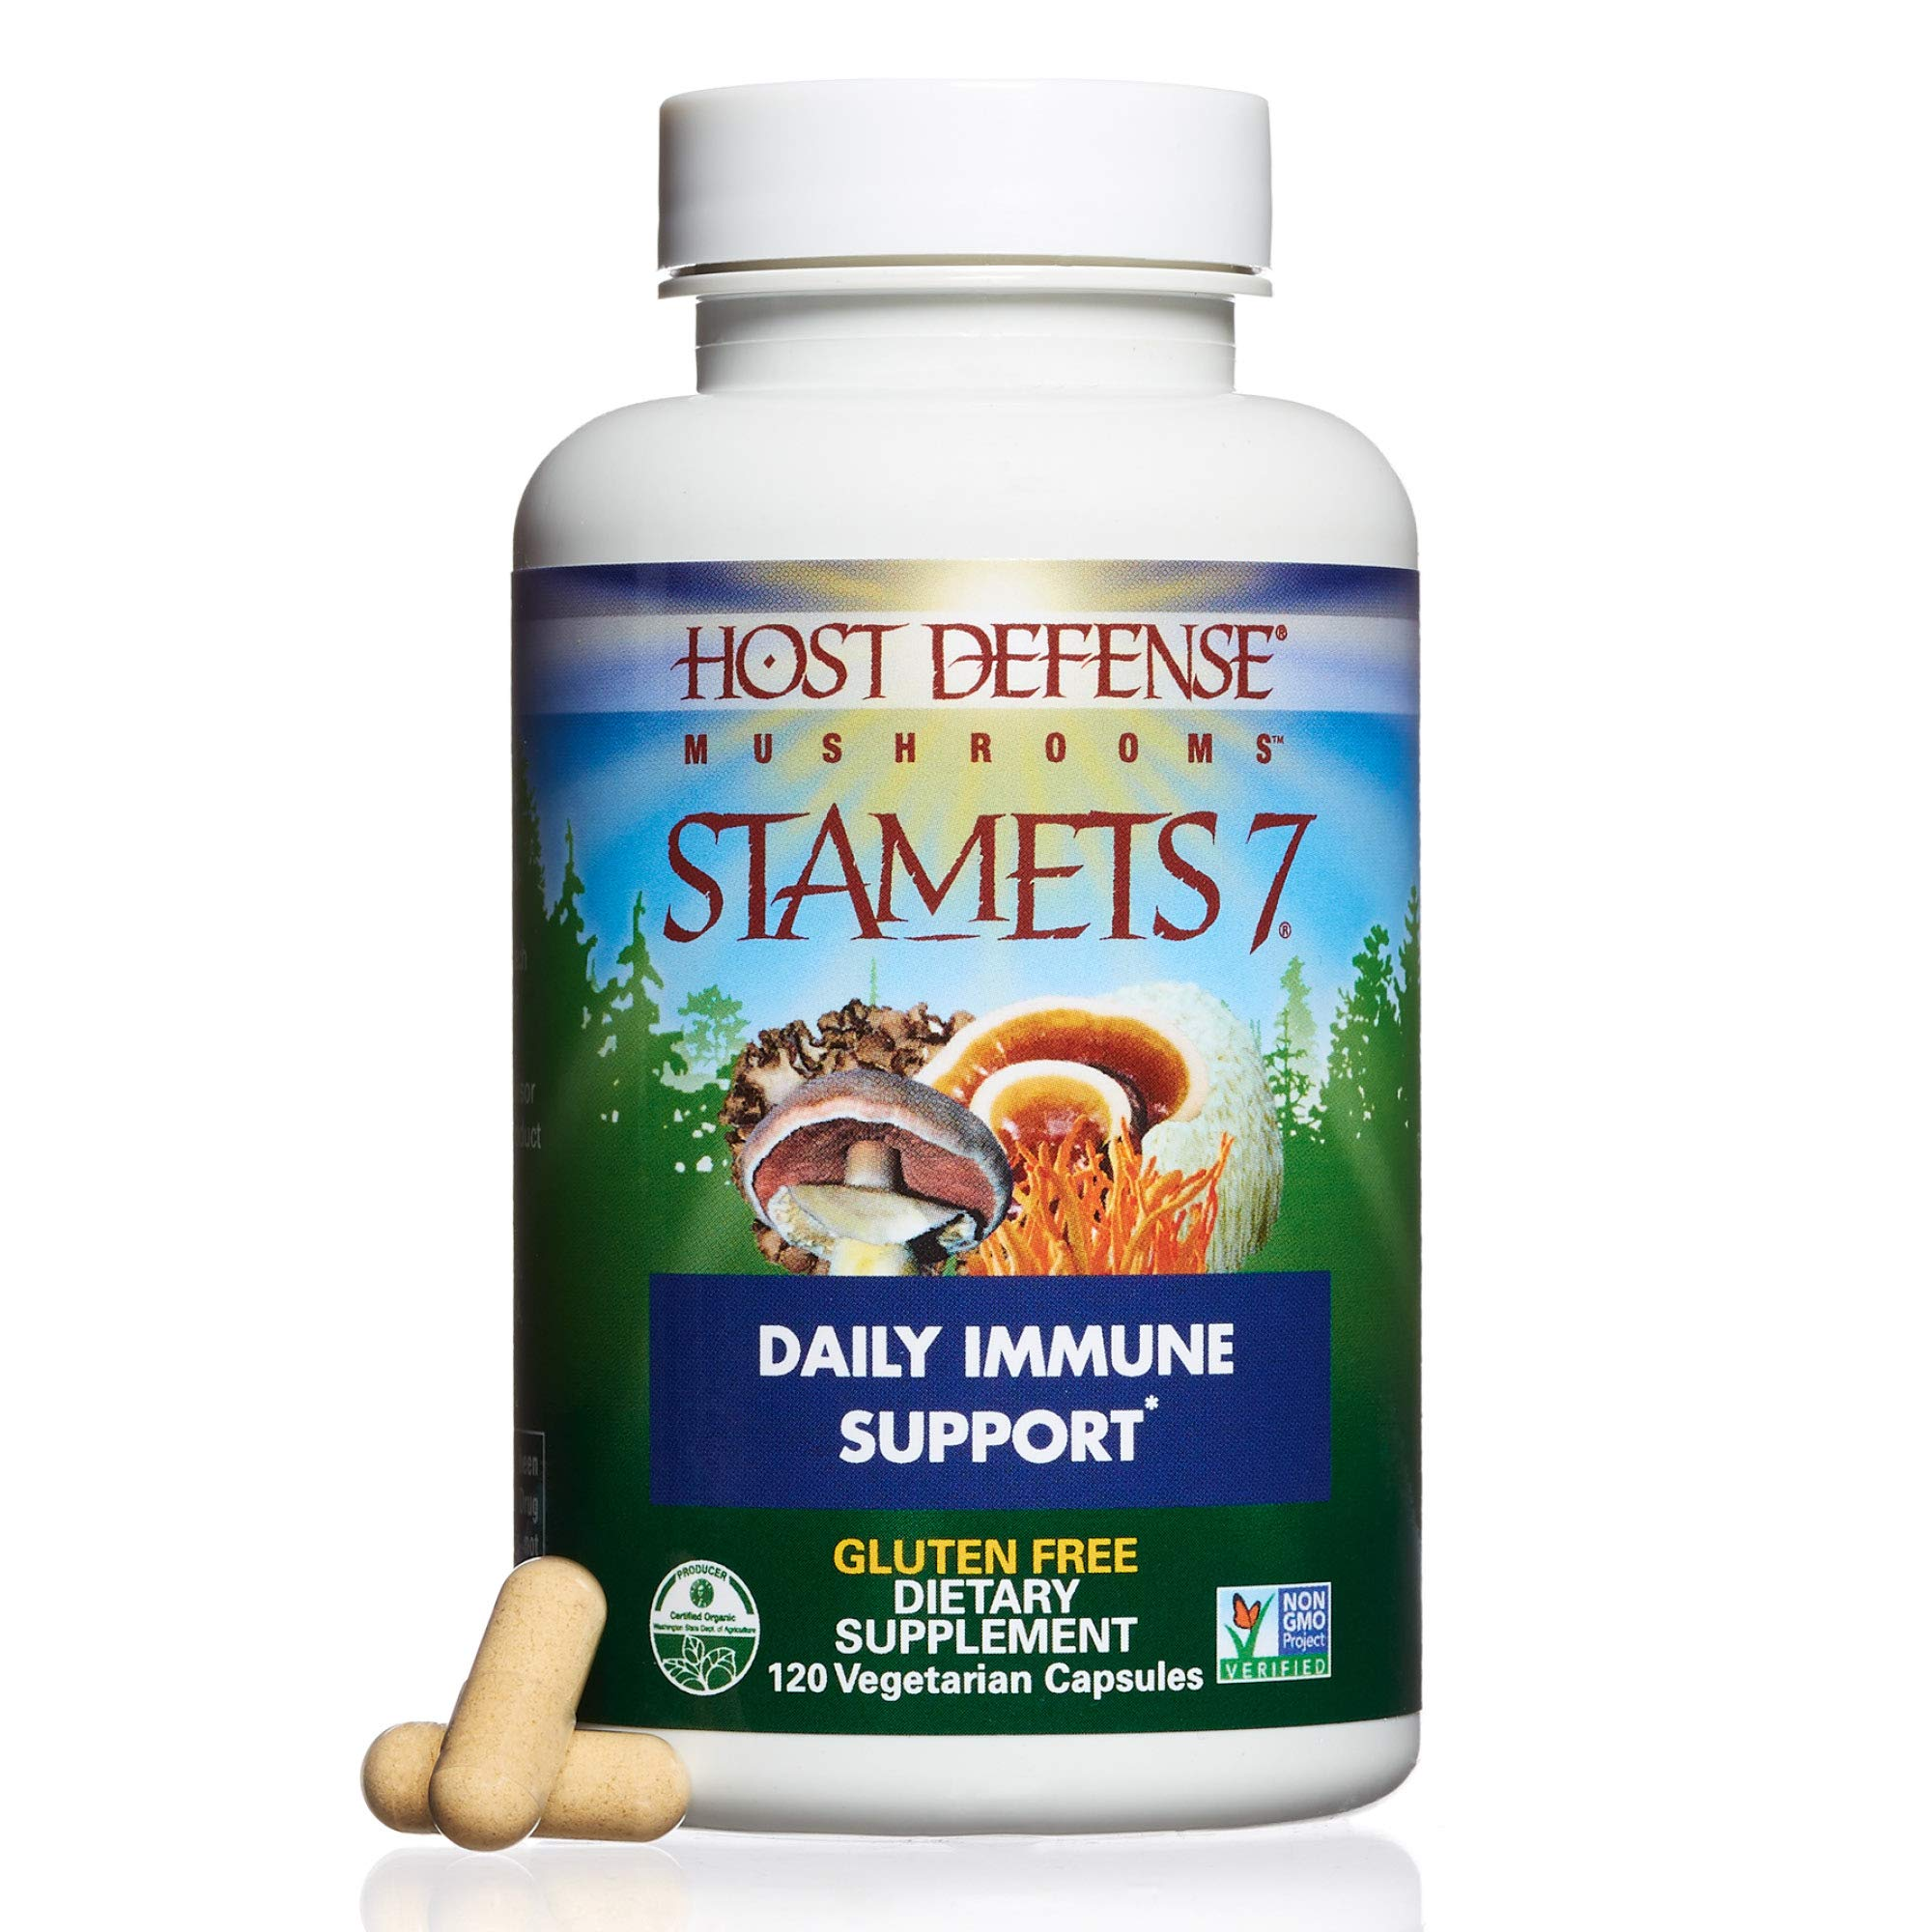 Host Defense - Stamets 7 Multi Mushroom Capsules, Supports Overall Immunity by Promoting Respiration and Digestion with Lion's Mane, Reishi, and Cordyceps, Non-GMO, Vegan, Organic, 120 Count